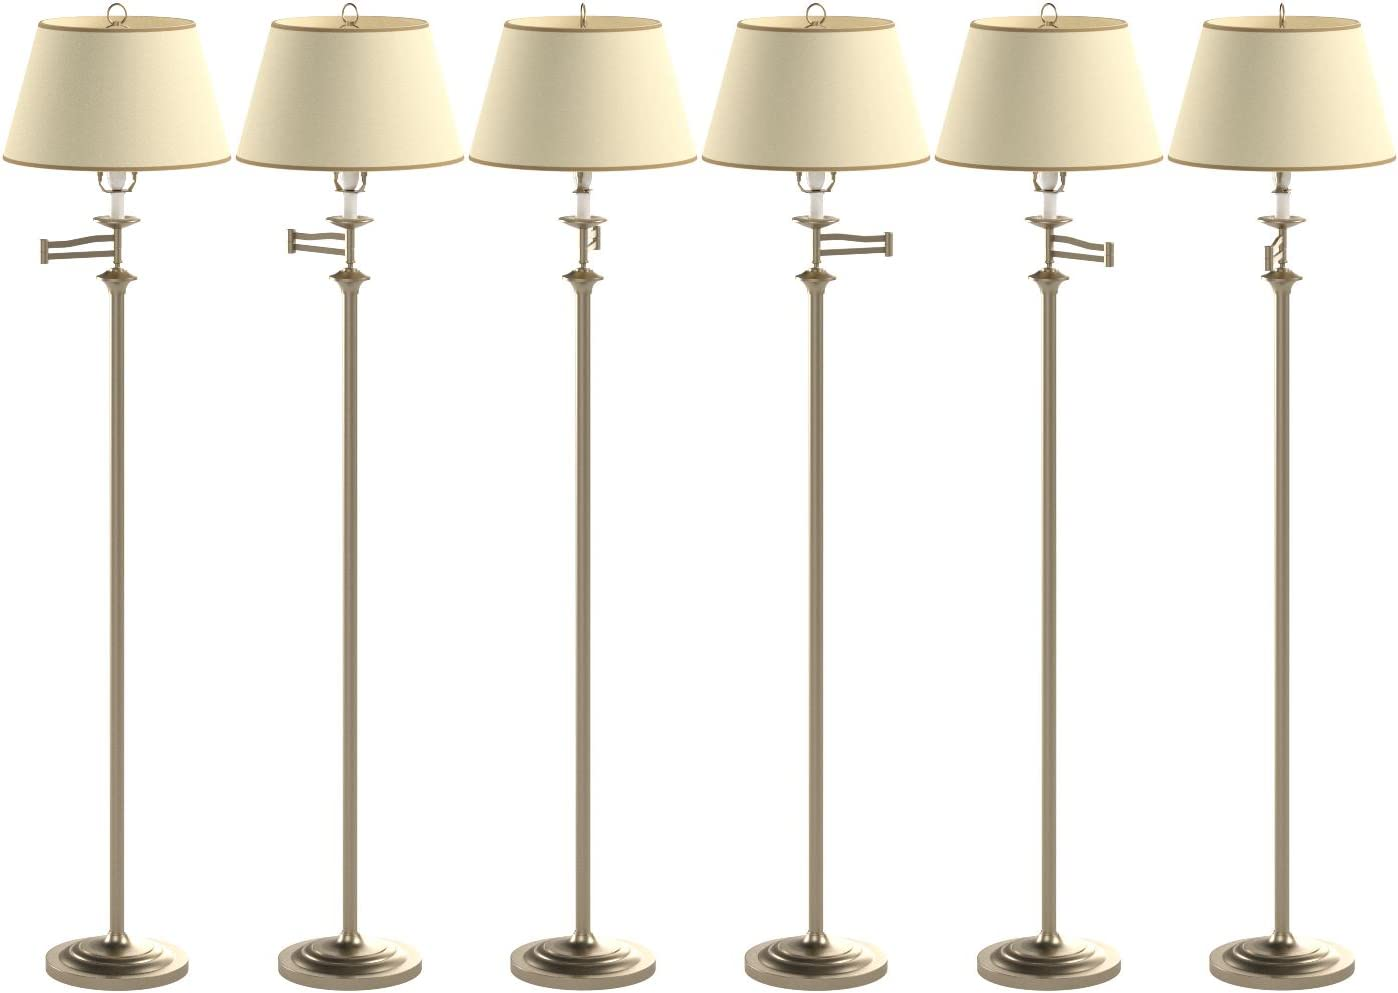 Belfry Swing Arm Floor Lamp Antique Brass Finish Supplied Complete With Parchment Shade Amazon Co Uk Lighting